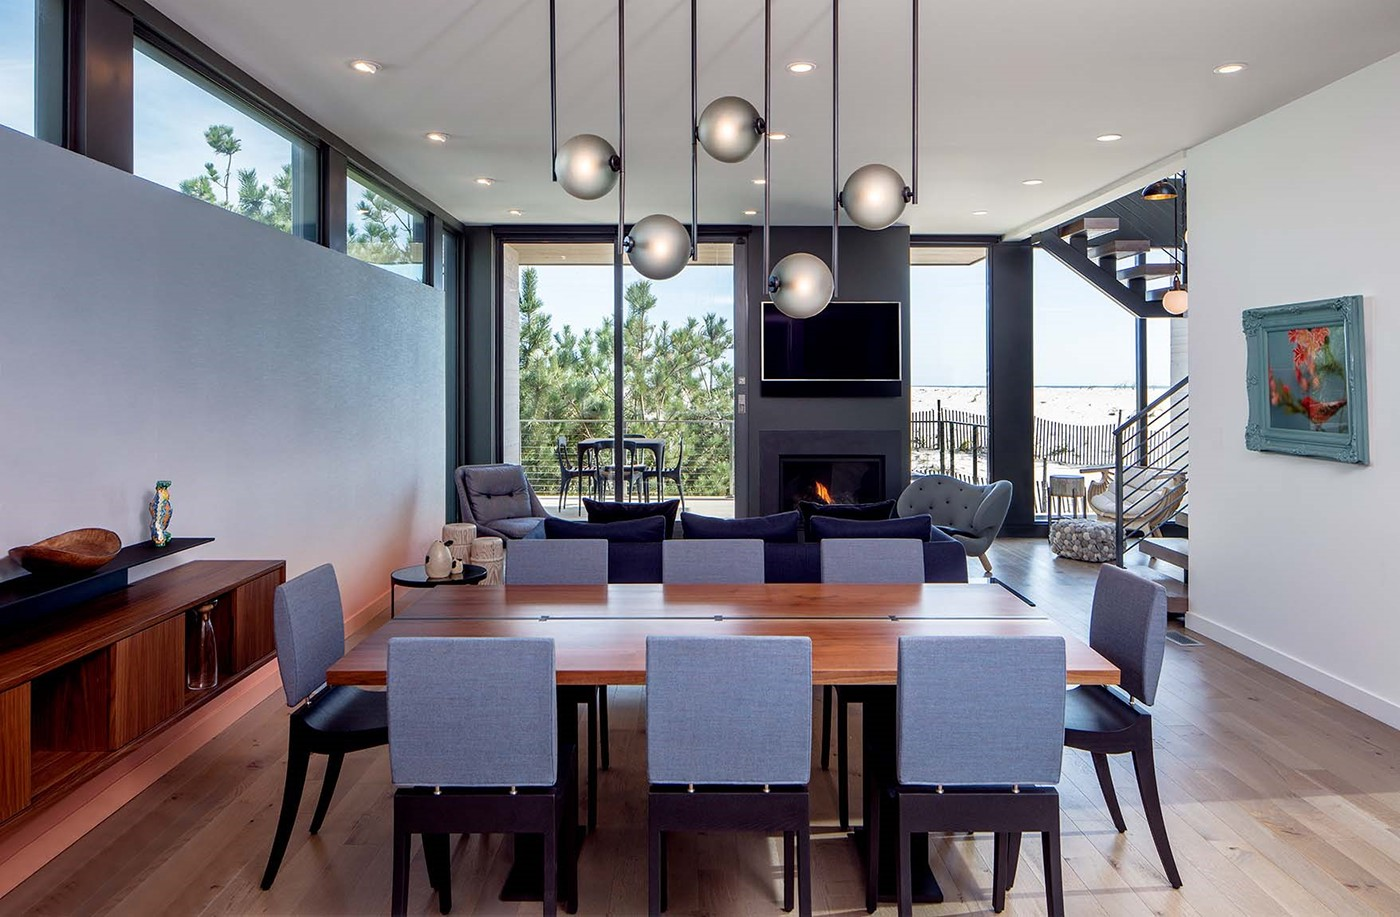 Beach Haven Residence Dining Area | Long Beach Island, NJ By Specht  Architects. Photography: Taggart Sorensen.